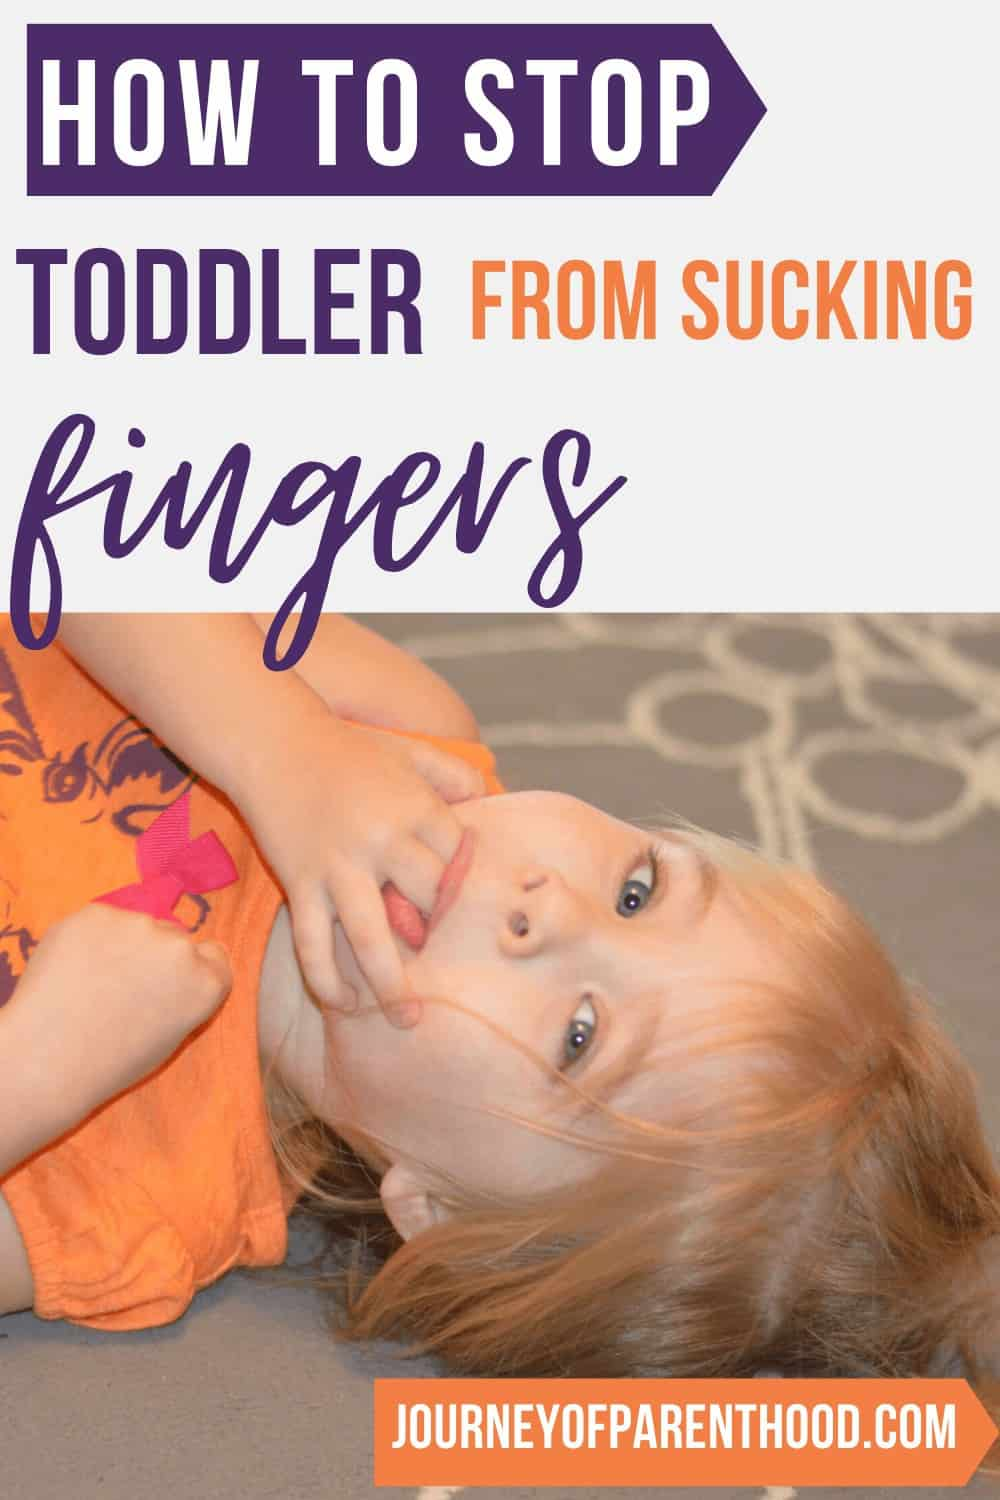 Weaning from Finger Sucking: How to Help Child Stop Sucking Their Fingers